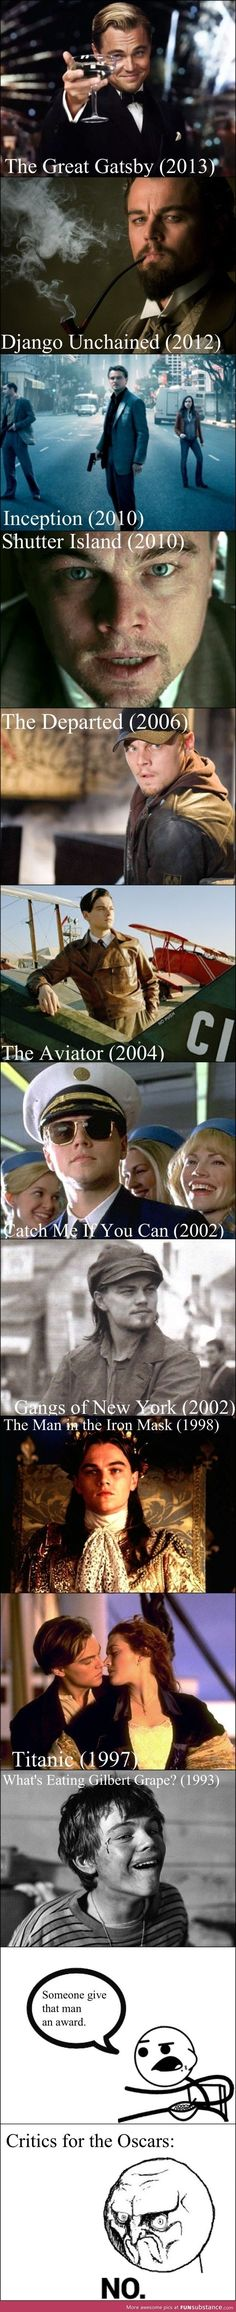 Leonardo DiCaprio seriously I don't think He'll ever win it. Leonardo Dicaprio, Movies Showing, Movies And Tv Shows, John Russell, Cult, Dane Dehaan, Ingmar Bergman, Film Serie, Good Movies